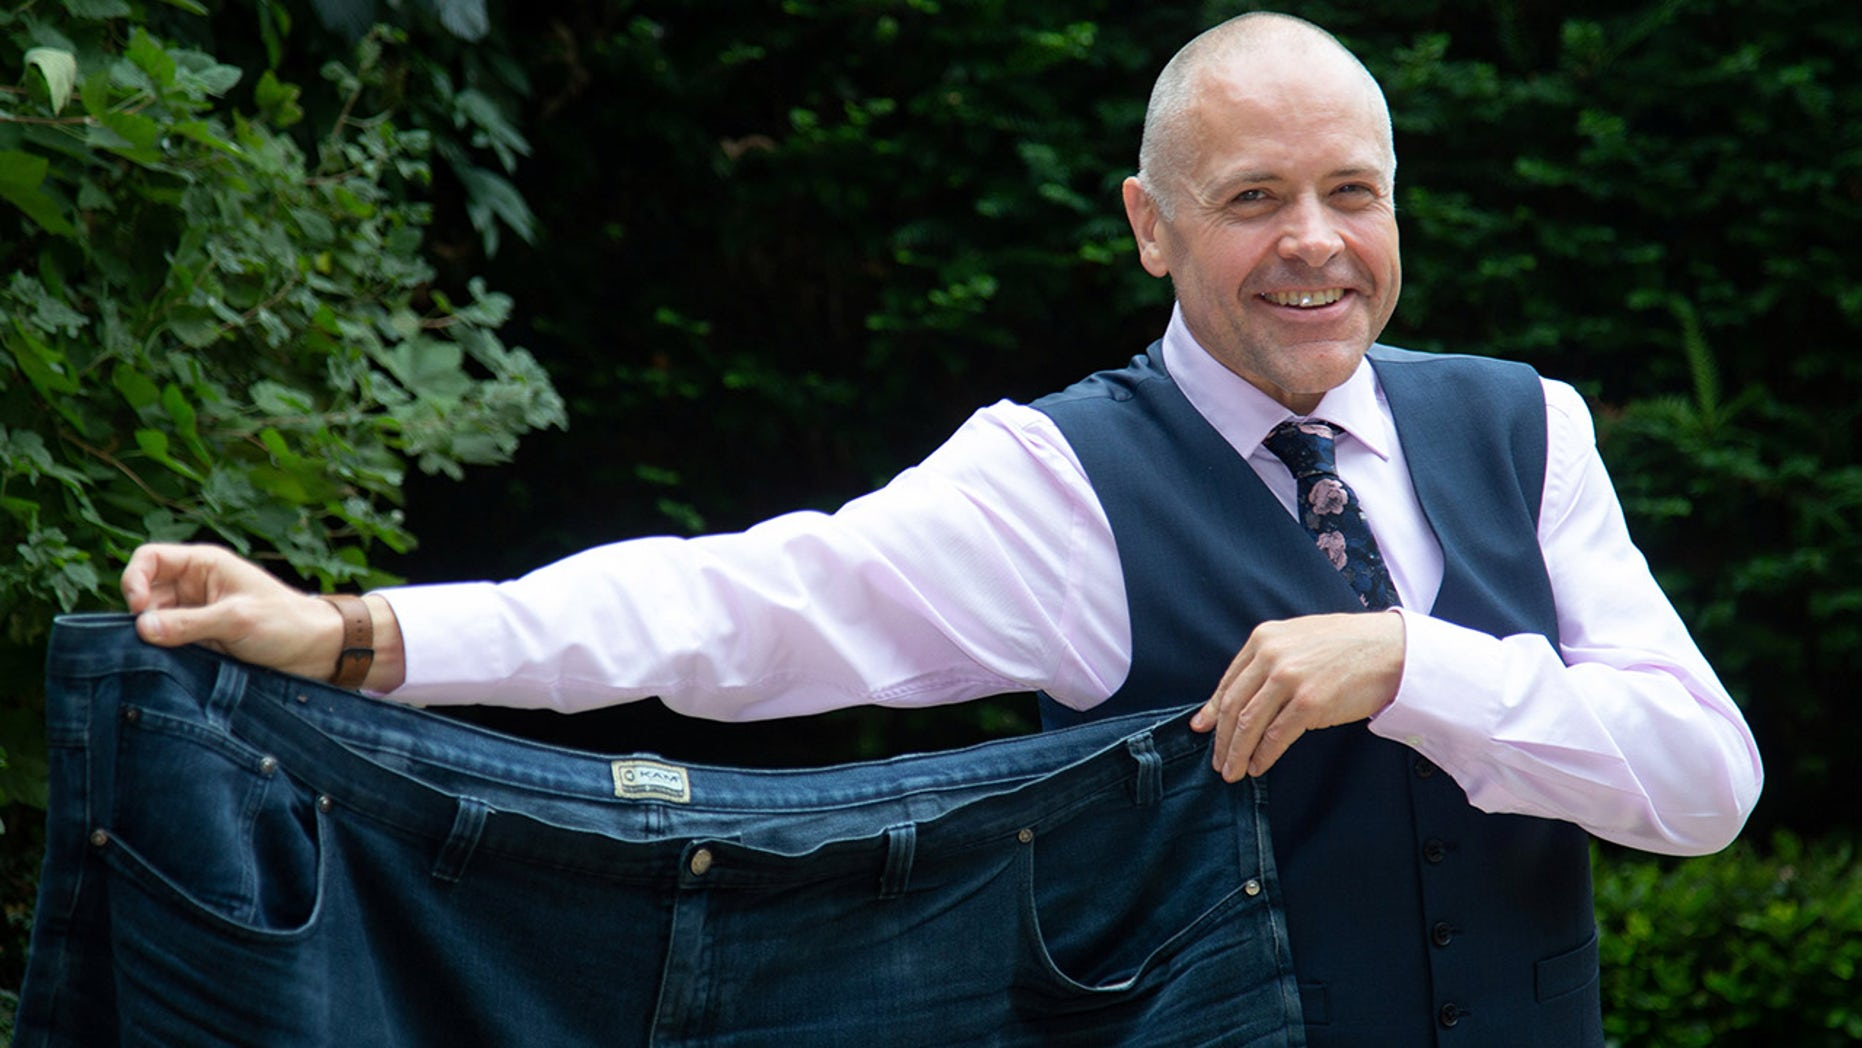 Dave Lancaster changed his diet and lifestyle two years ago, which ultimately transformed his life.